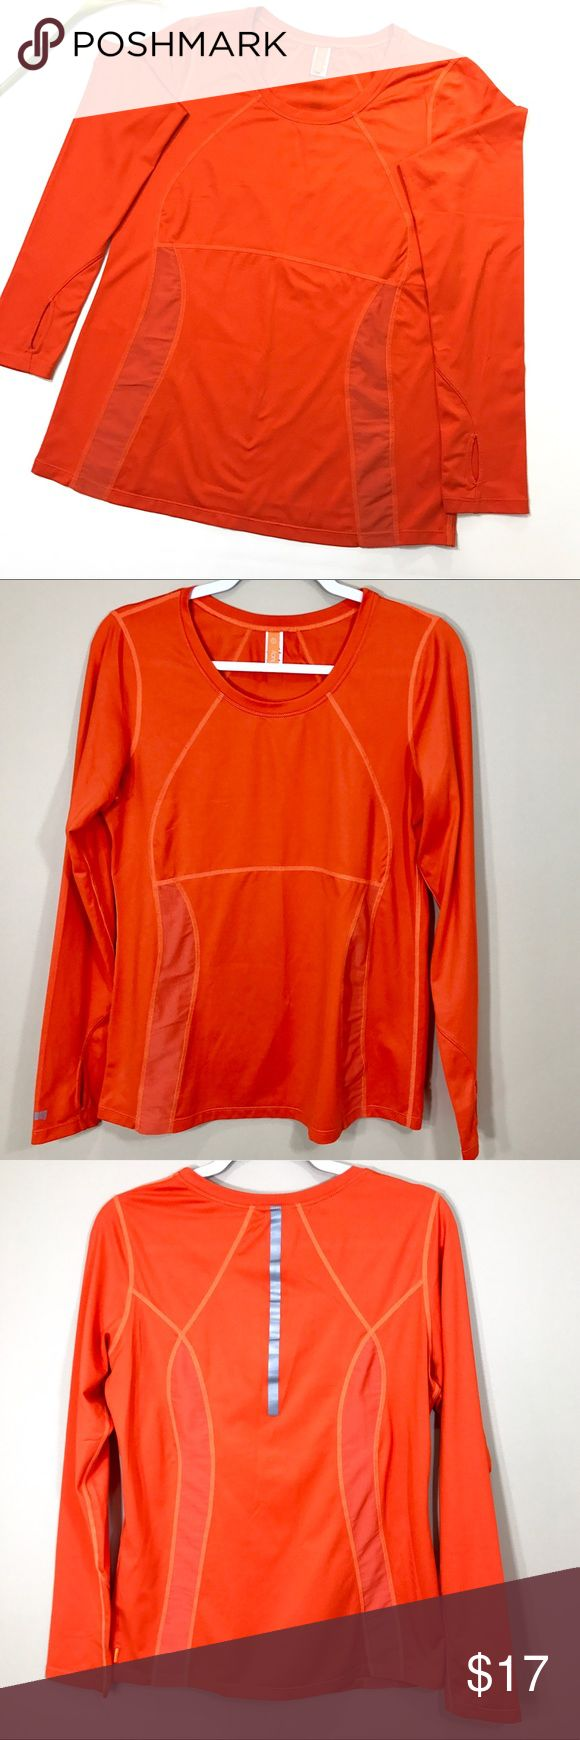 Lucy Workout long sleeve top size L This vibrant orange long sleeve top is perfect for when you head out for a run or workout. The thumbhole is perfect to keep your hands warm on a chilly day and the back reflective is necessary for a low visibility day. The top also comes with mesh venting on the front and back that will allow room to breath. Lucy Tops